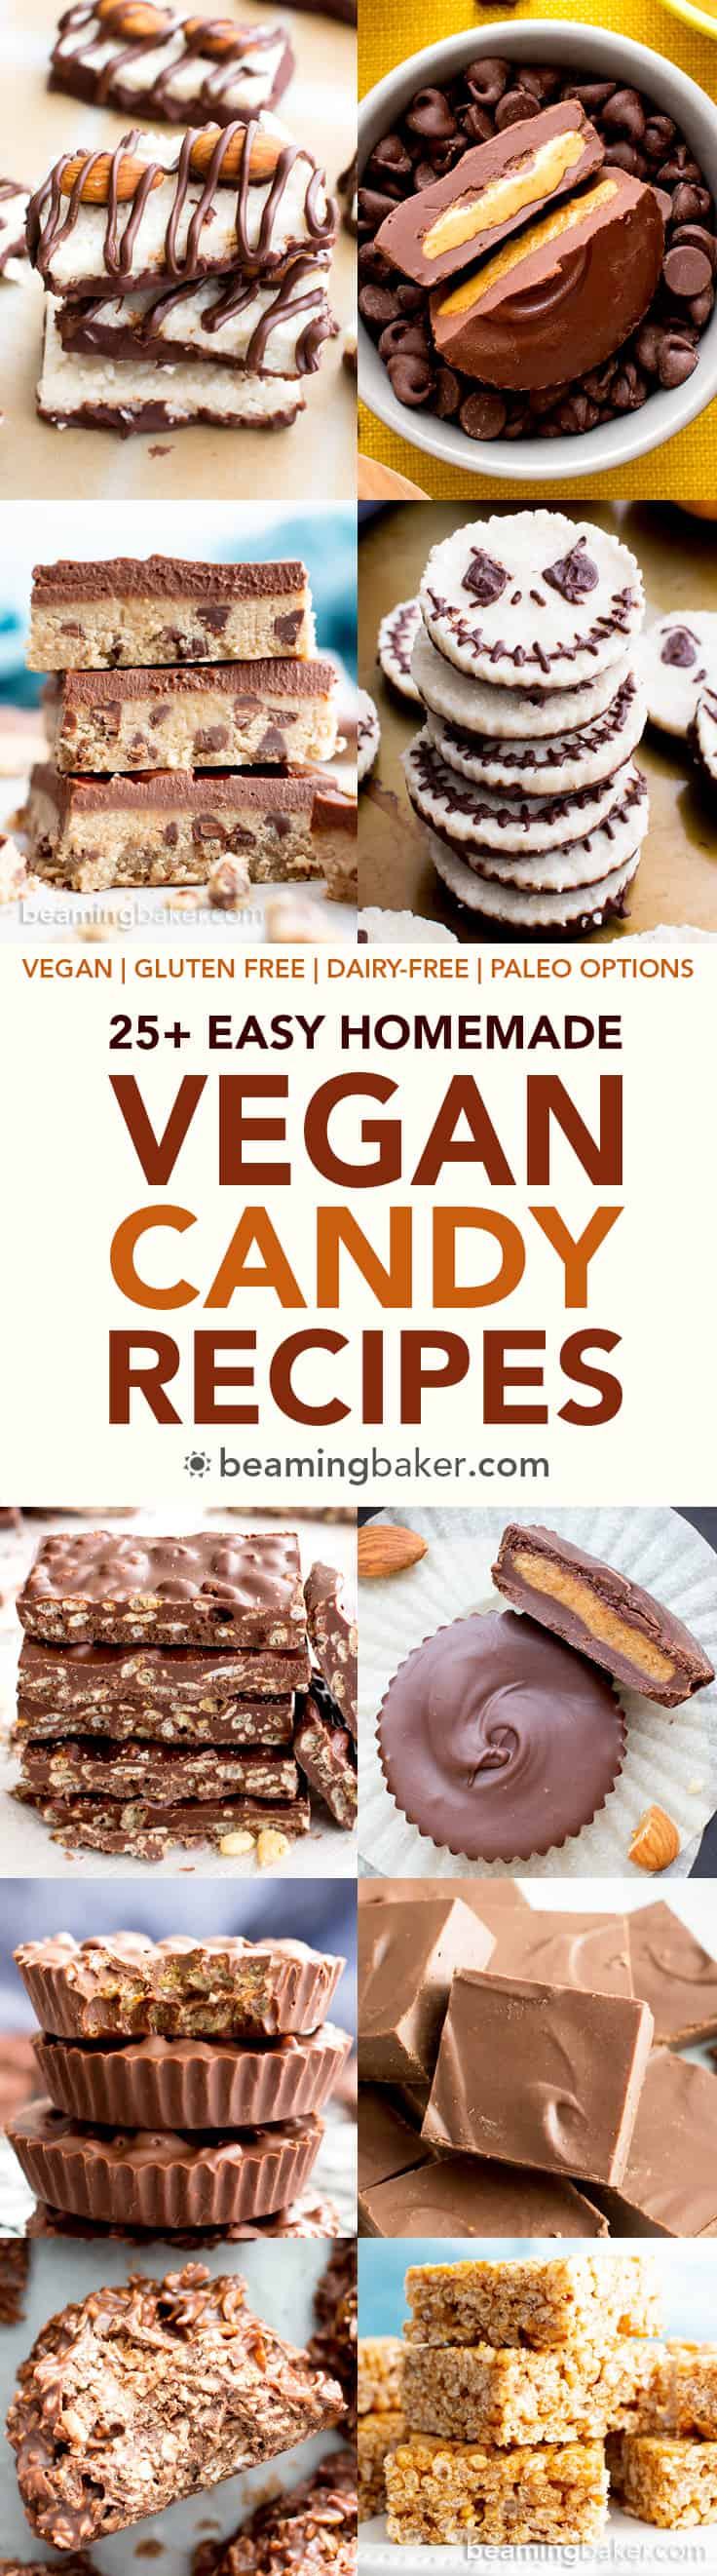 25+ Easy Homemade Vegan Candy Recipes (V, GF): a deliciously sweet collection of the best easy homemade vegan gluten free candy recipes! Chocolate bars, peanut butter cups, Almond Joys and more! #Vegan #GlutenFree #DairyFree #Paleo #Chocolate #Candy #Homemade #Halloween | Recipes on BeamingBaker.com